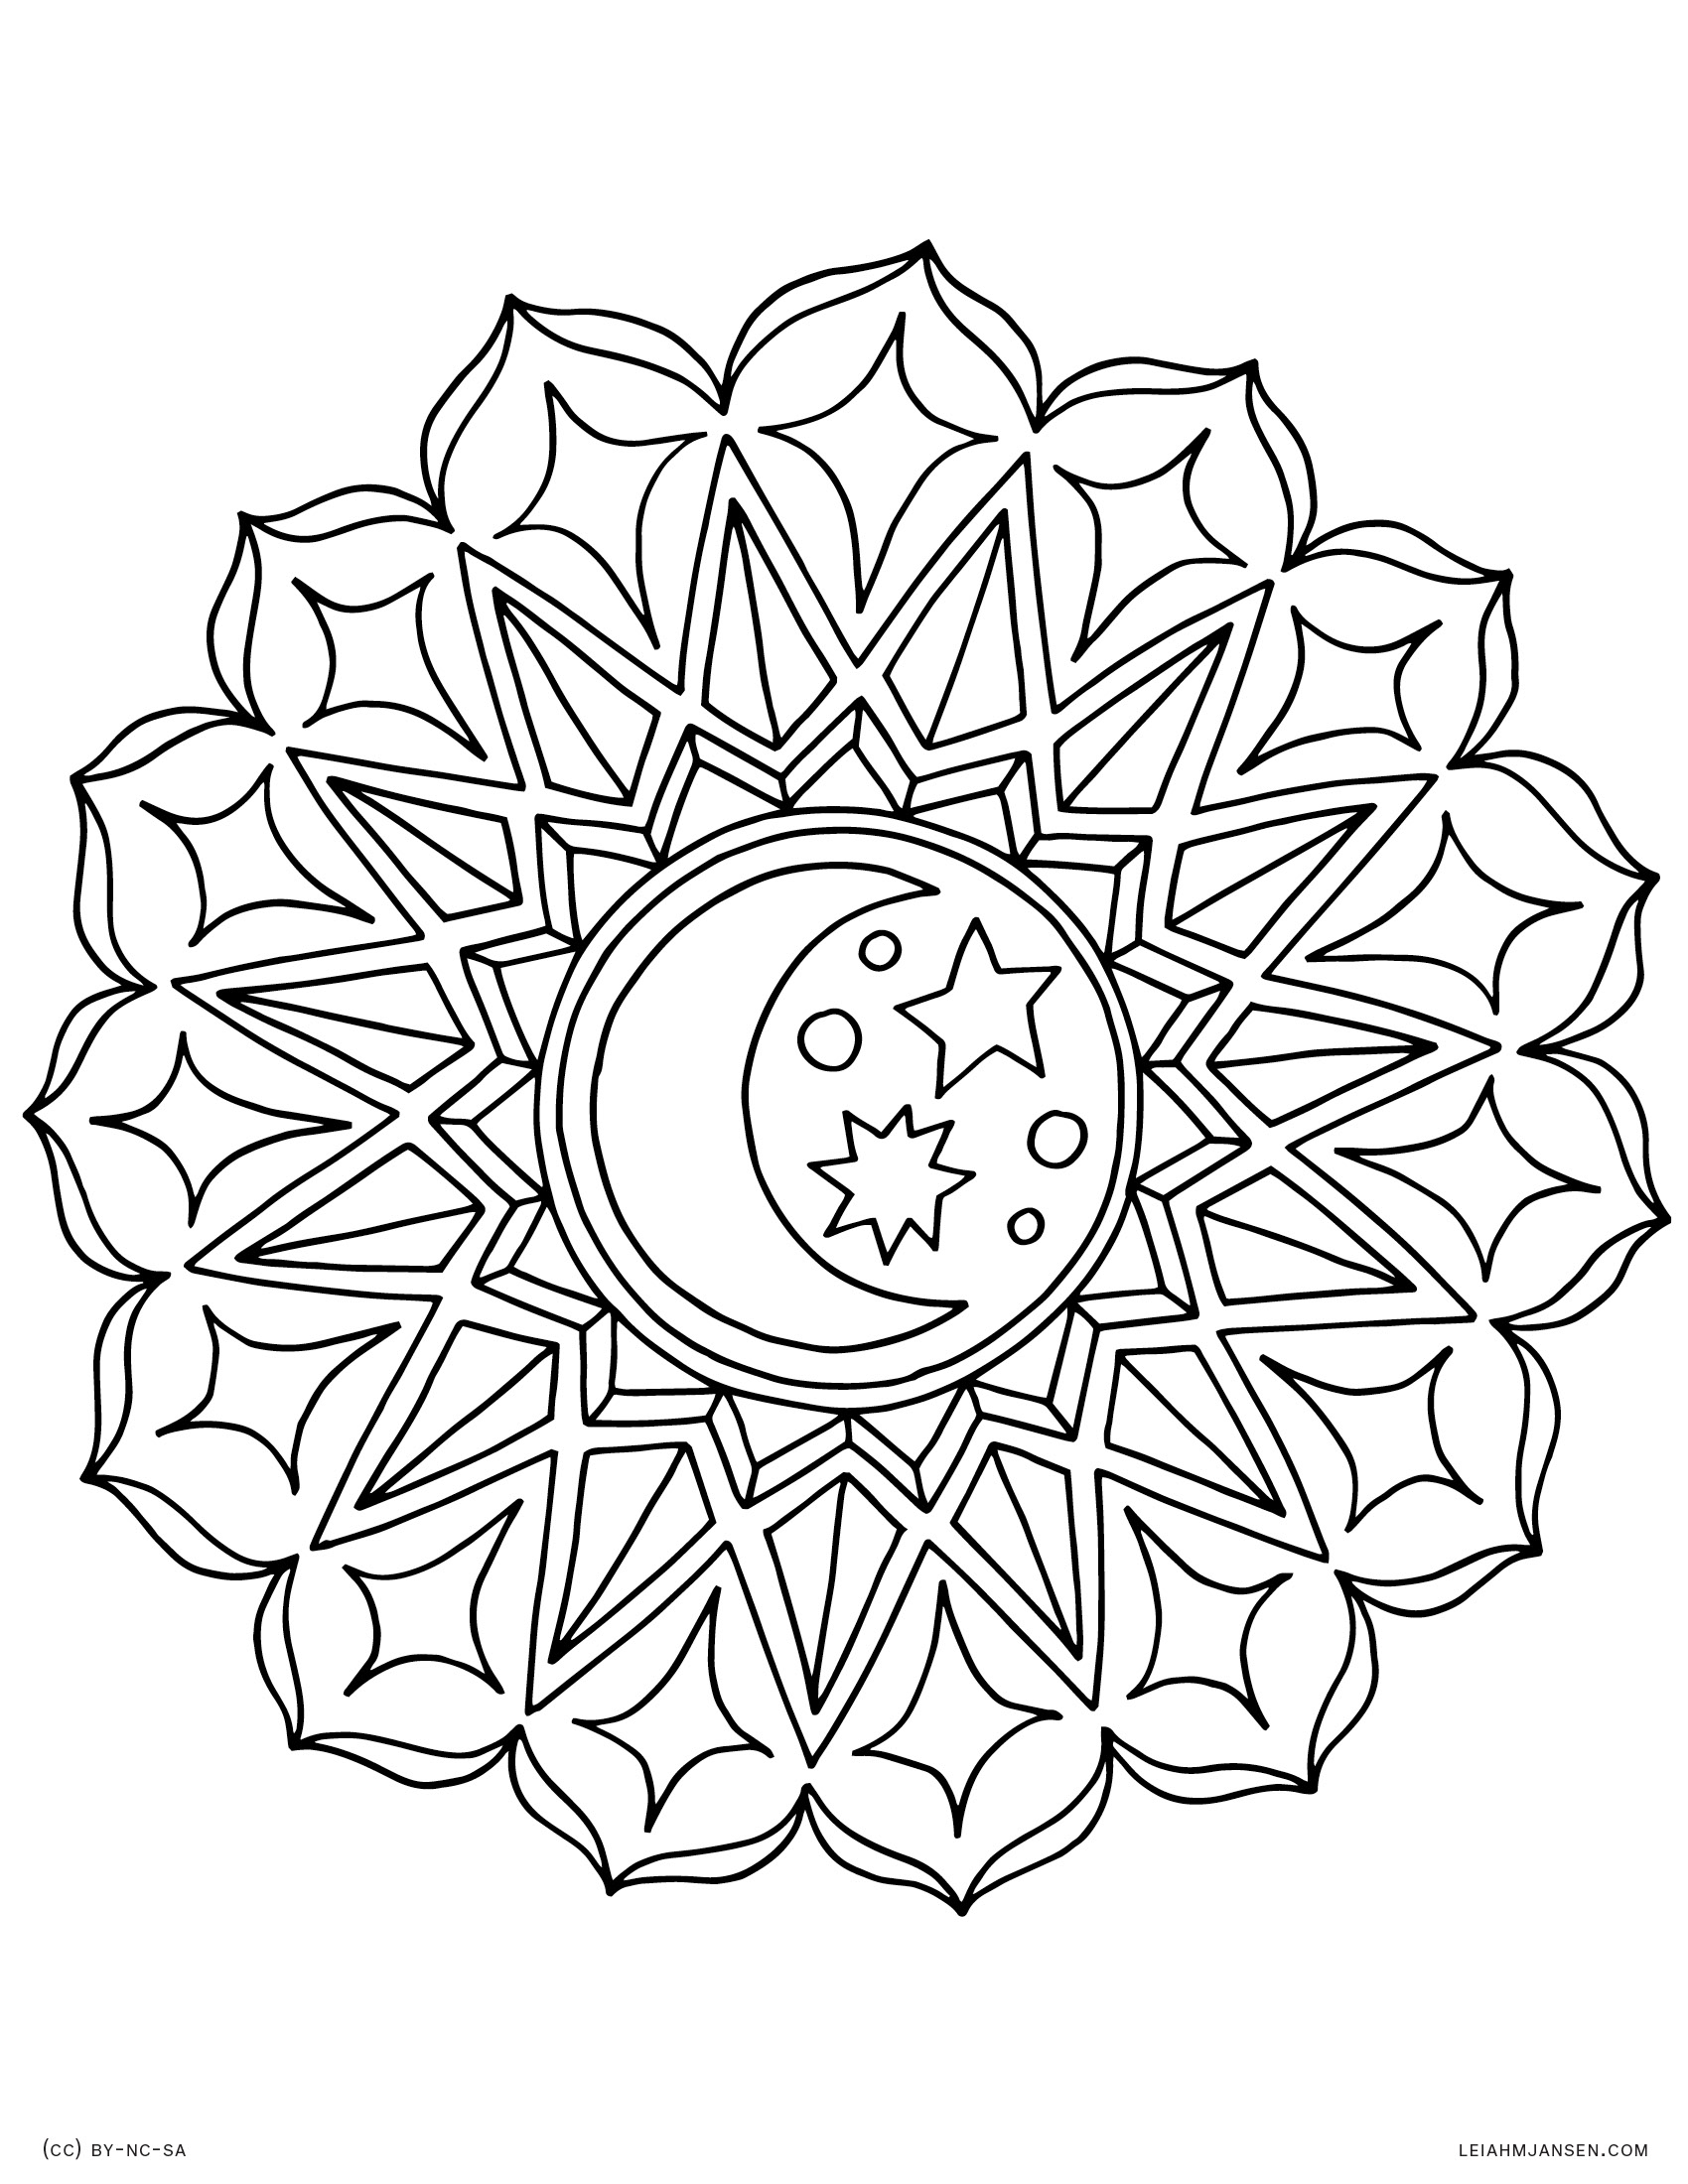 free printable mandala coloring pages adults coloring pages coloring free mandala printable pages adults